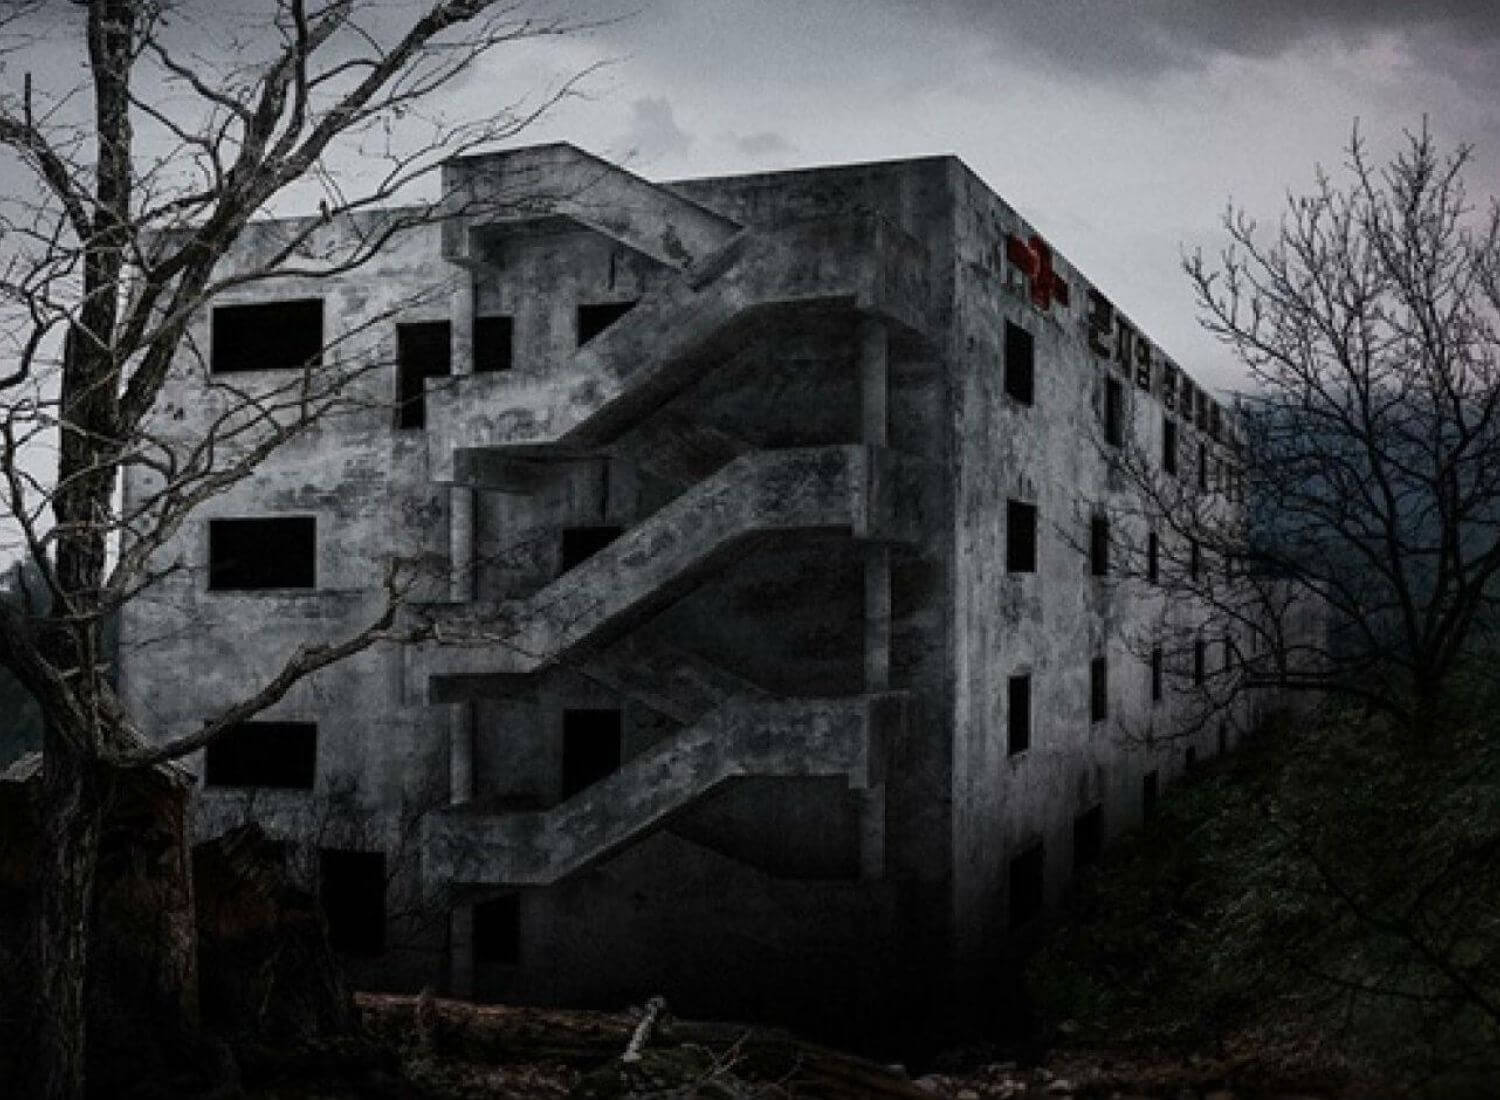 Finding Ghosts In South Korea's Most Haunted Gonjiam Psychiatric Hospital